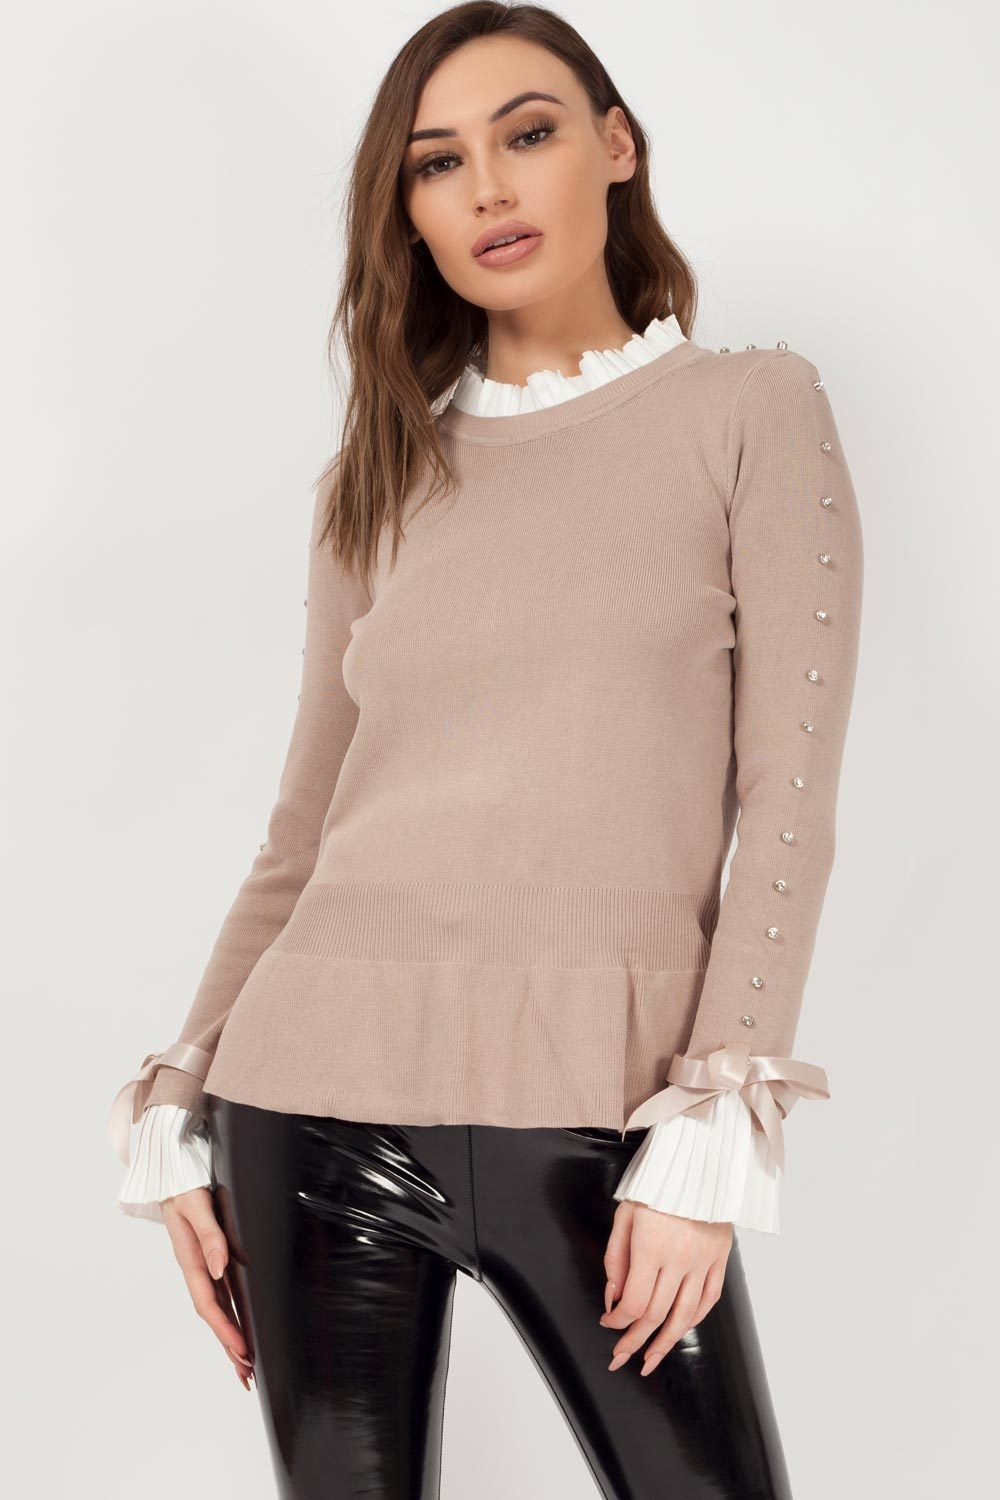 jumper with bows on sleeves mocha